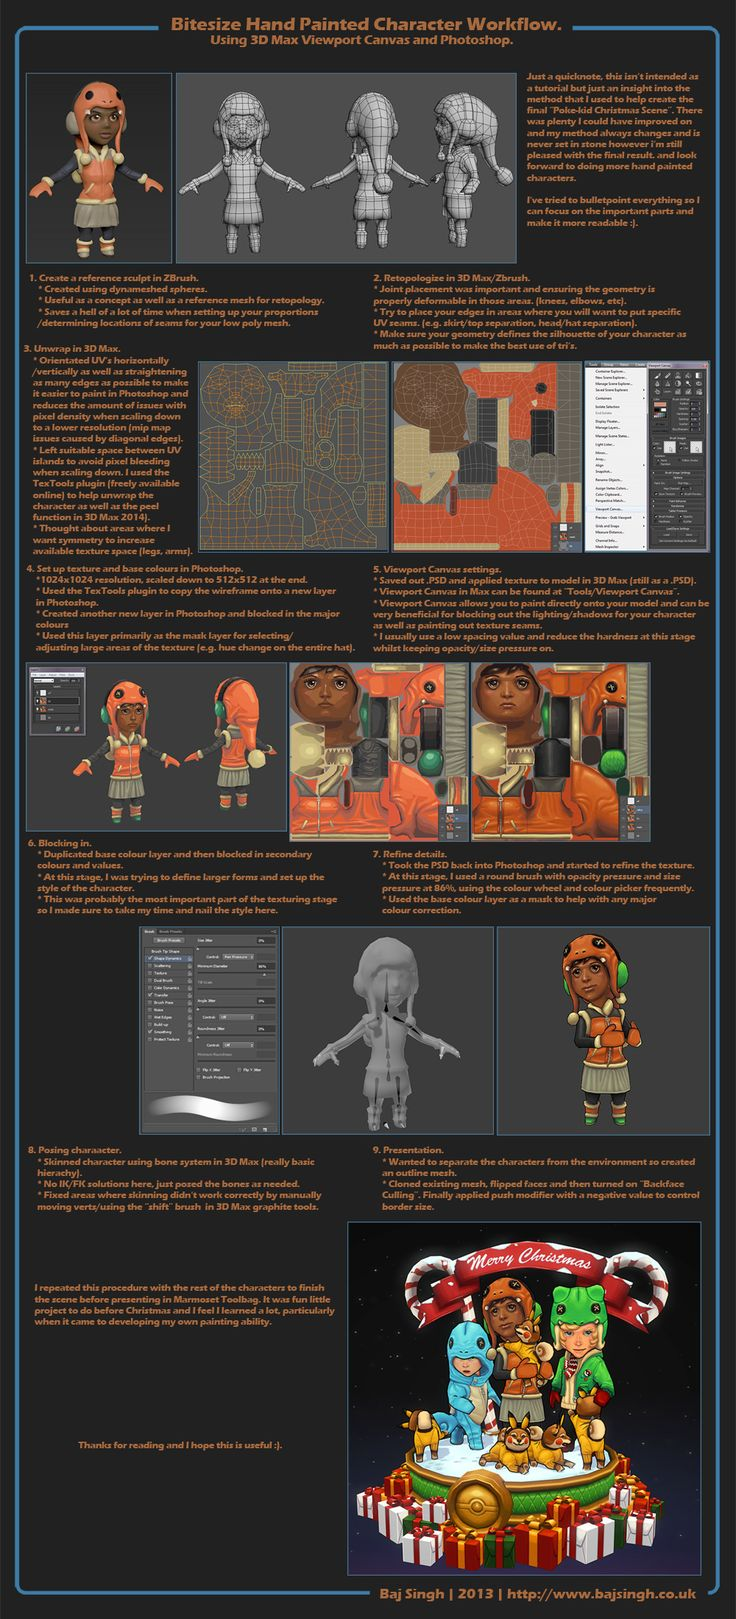 Bitesize Hand Pained Character Workflow